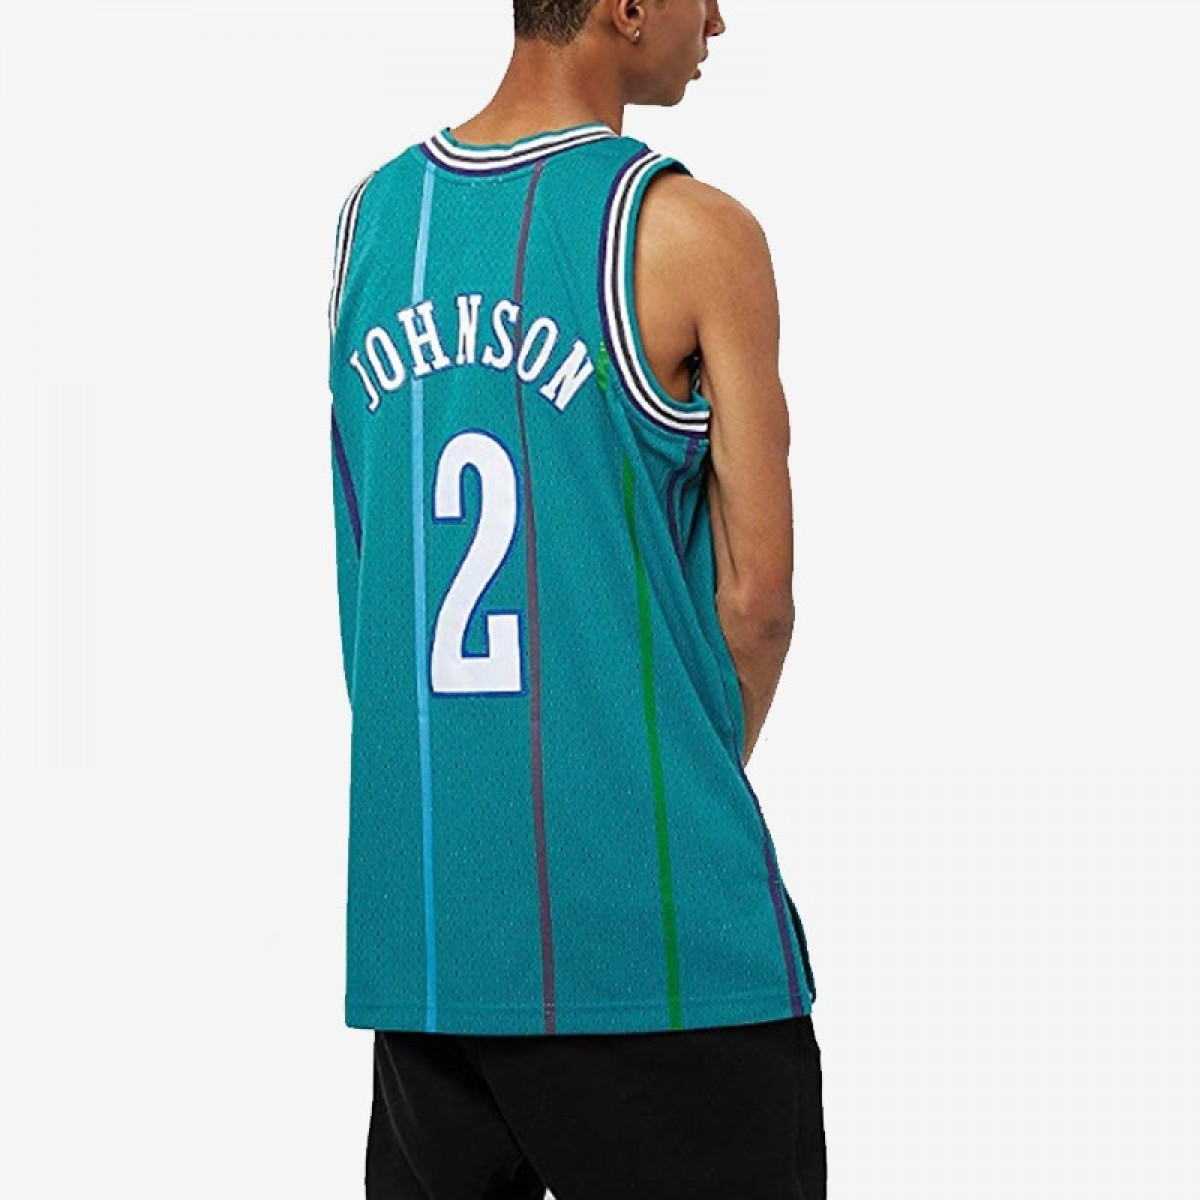 Mitchell & Ness Larry Johnson Swingman Jersey Away 'Charlotte'